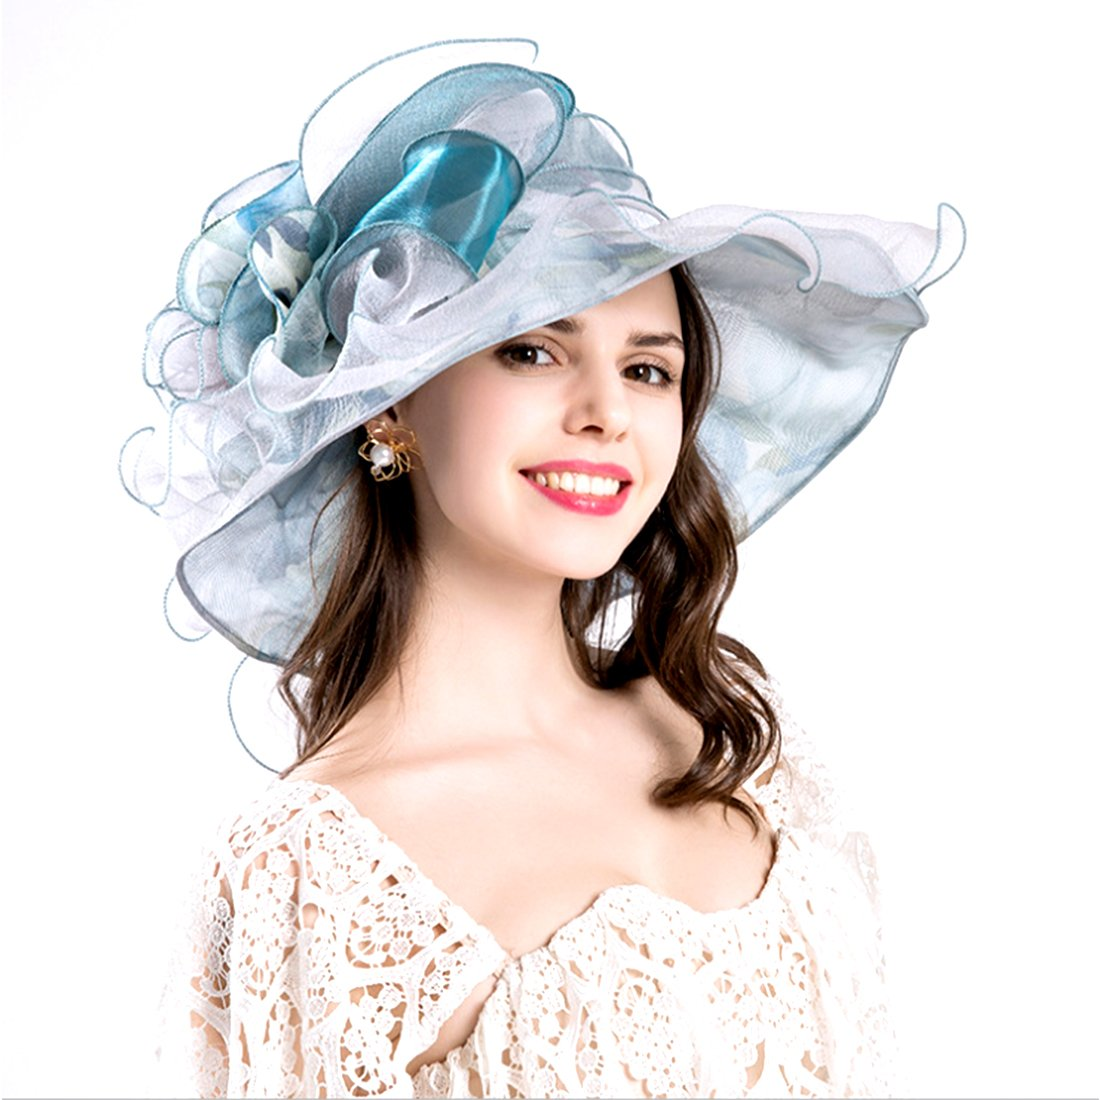 d51c4944ed5 Vakabva Church Derby Hats Kentucky Derby Gold Hats for Women (Blue) at  Amazon Women s Clothing store